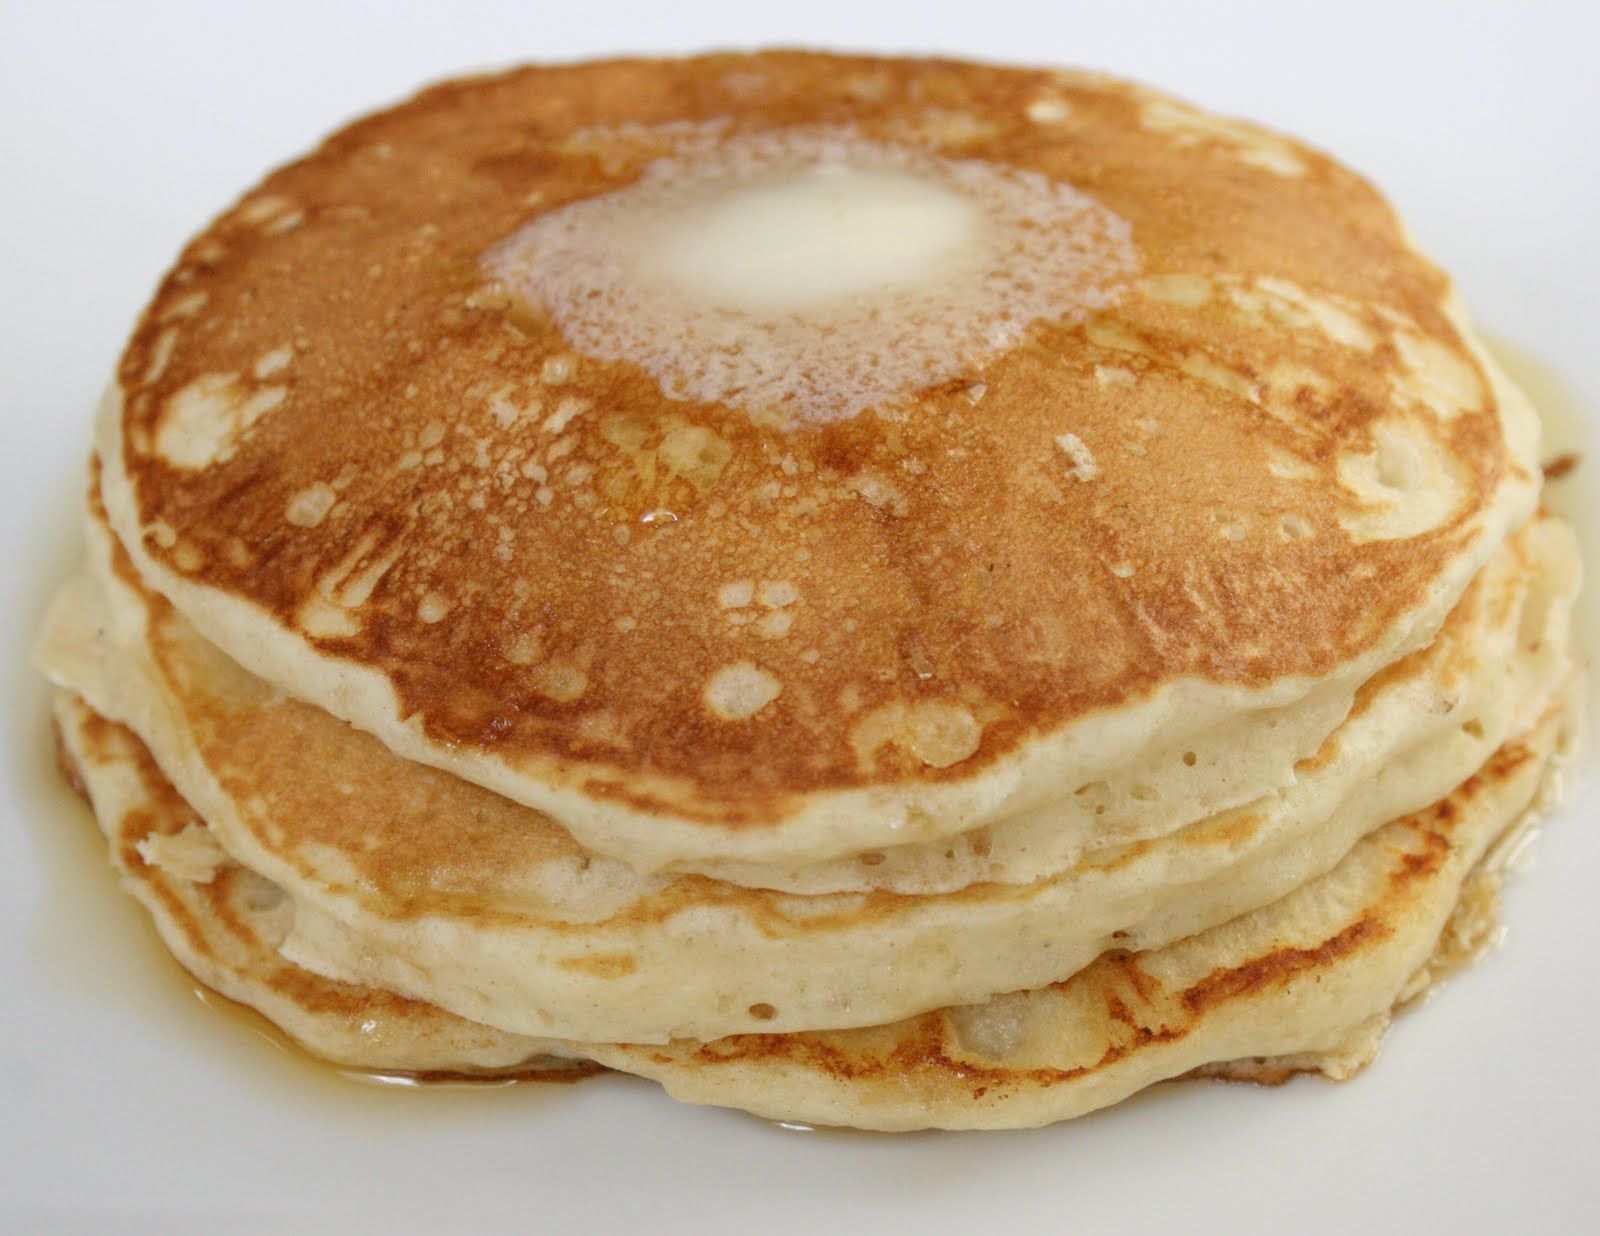 ... pancakes are light, fluffy and delicious. Oh and easy enough for even